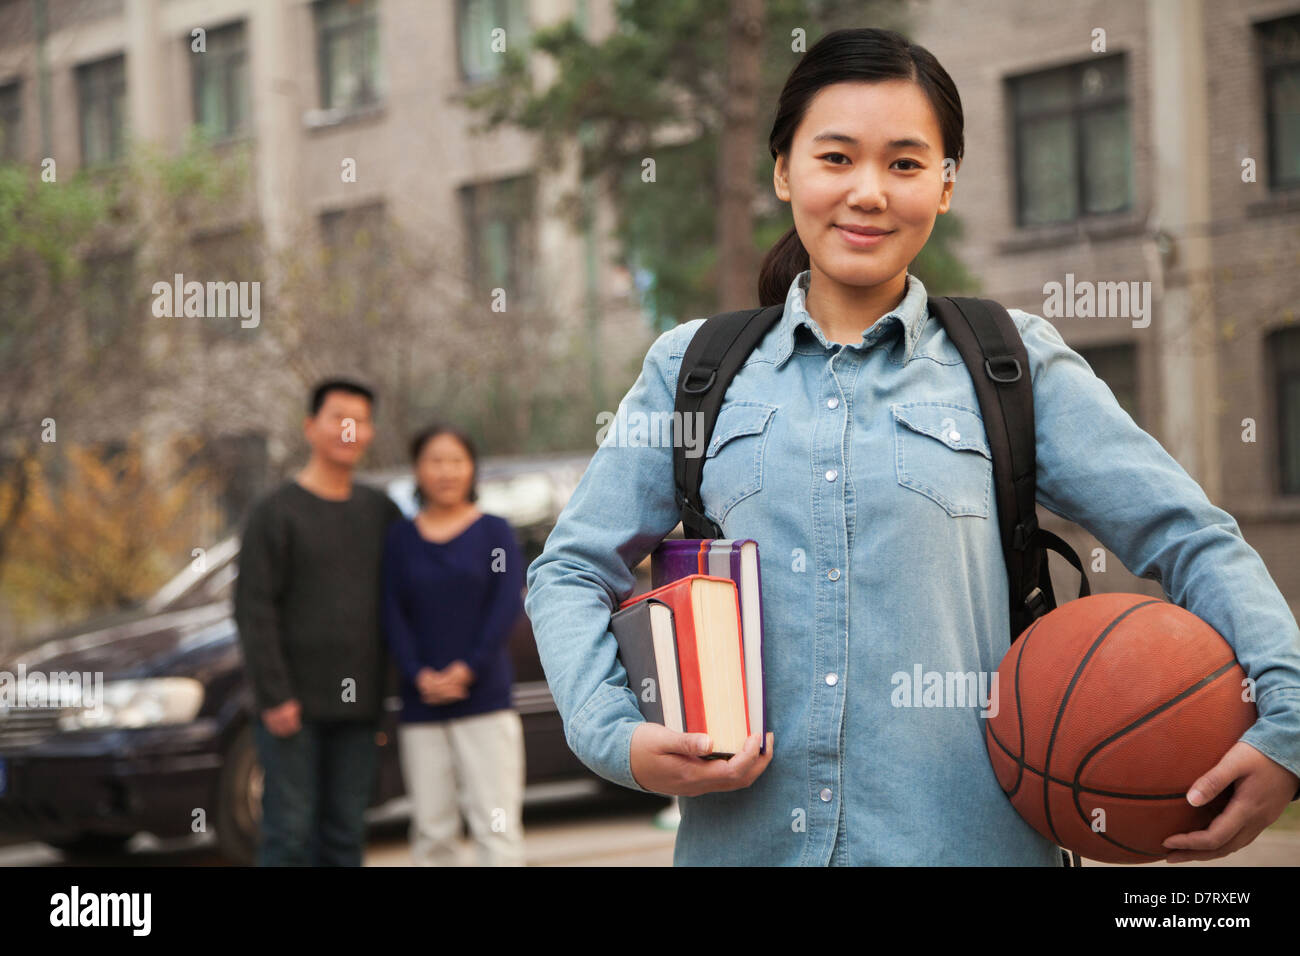 Family portrait in front of dormitory at college - Stock Image